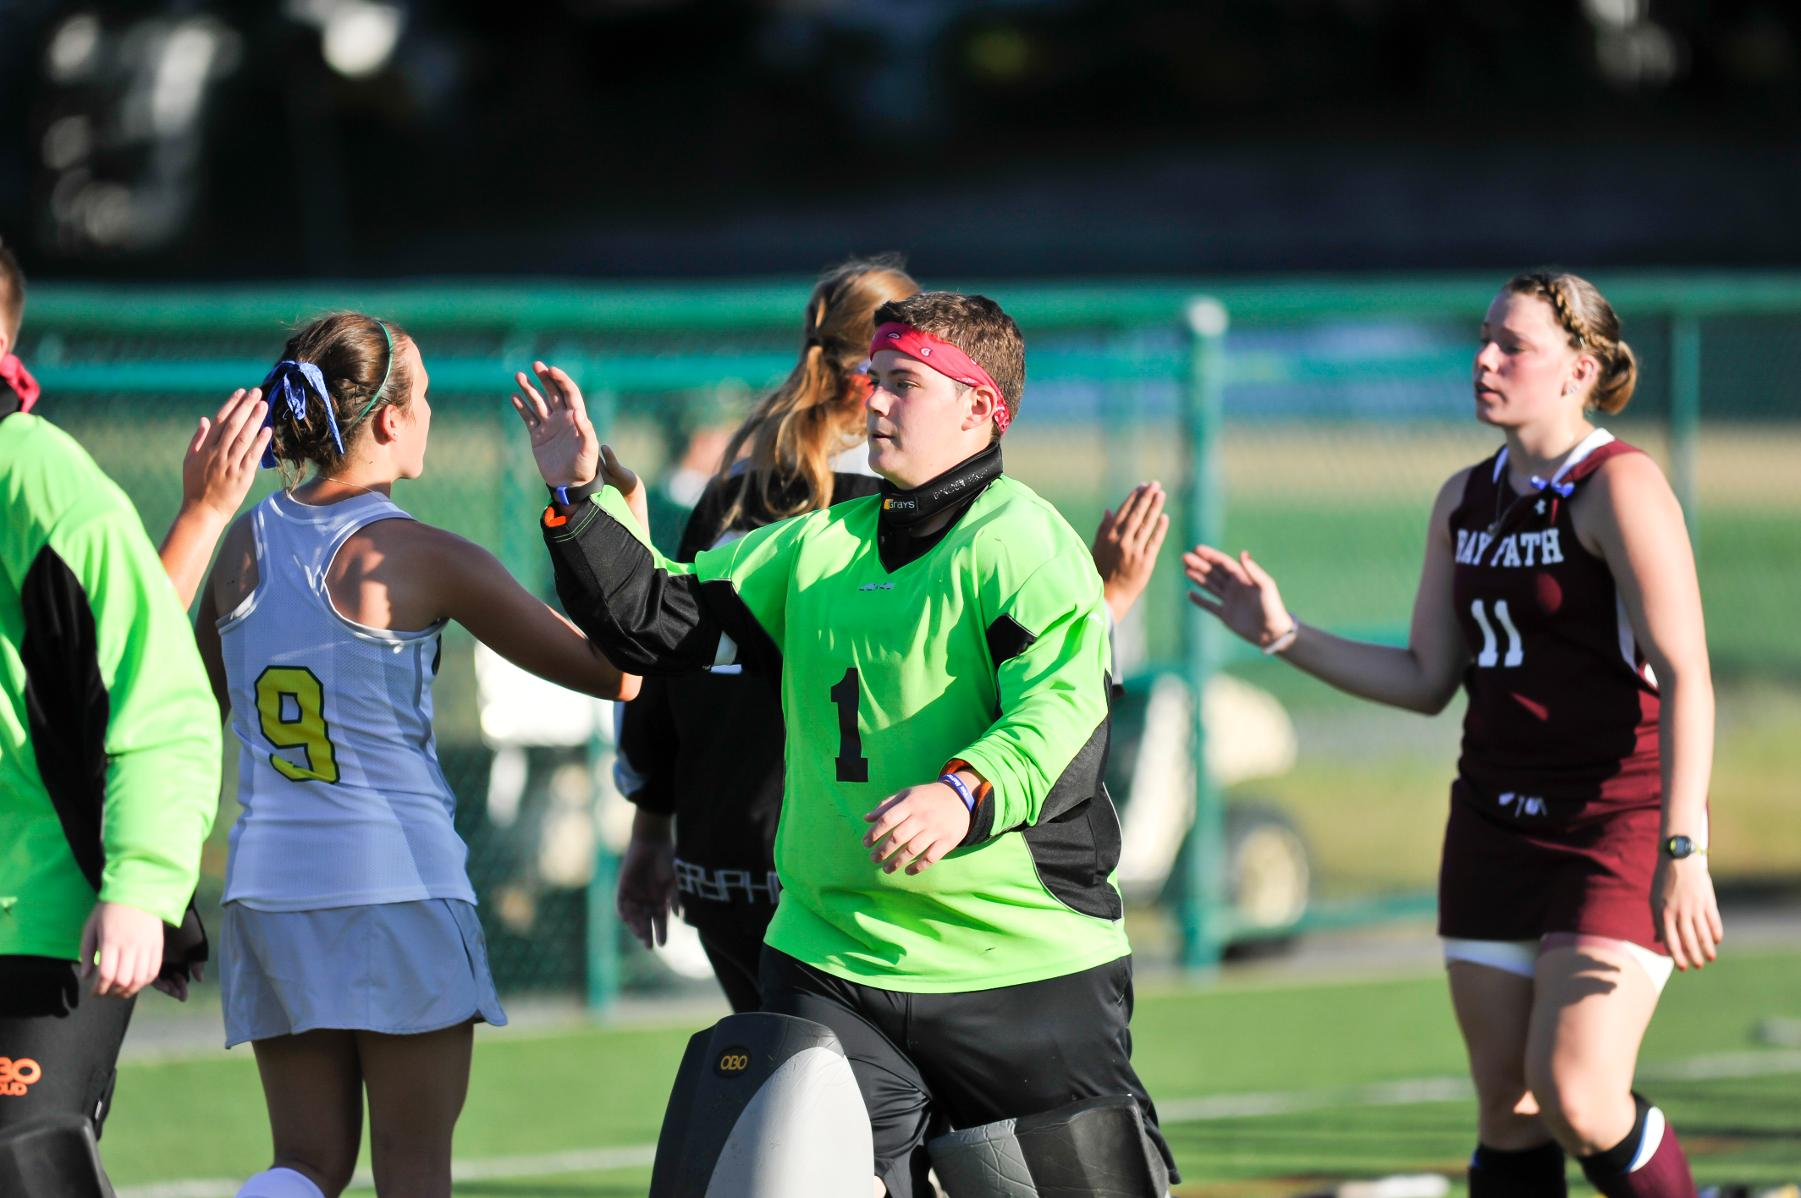 Meyer Selected to participate in NFHCA Senior All-Star Game